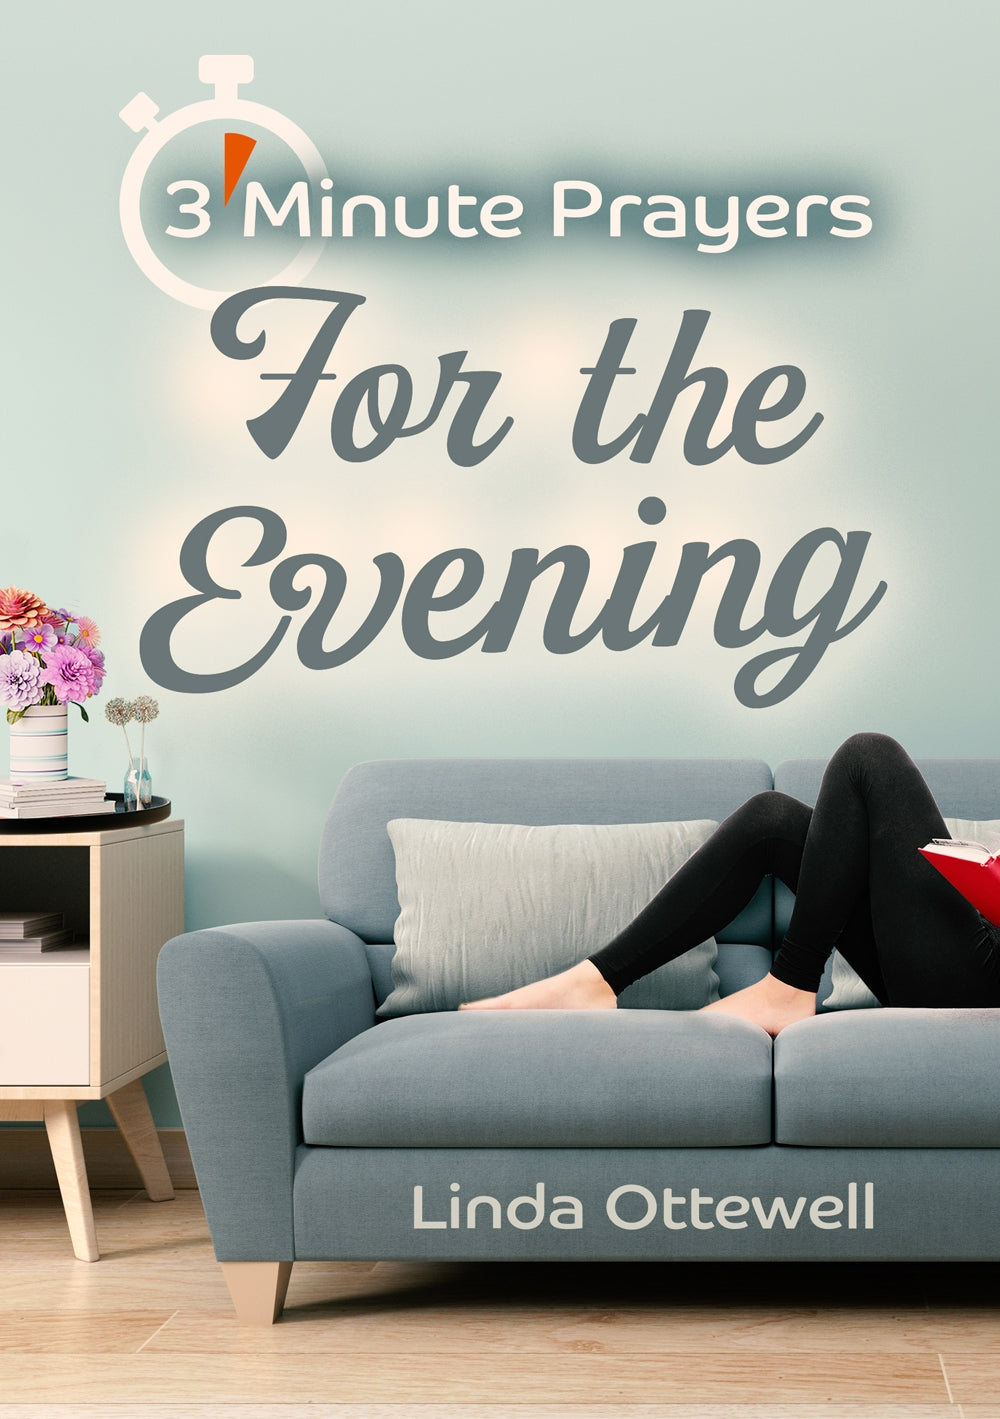 3 Minute Prayers Evening Prayers3 Minute Prayers Evening Prayers